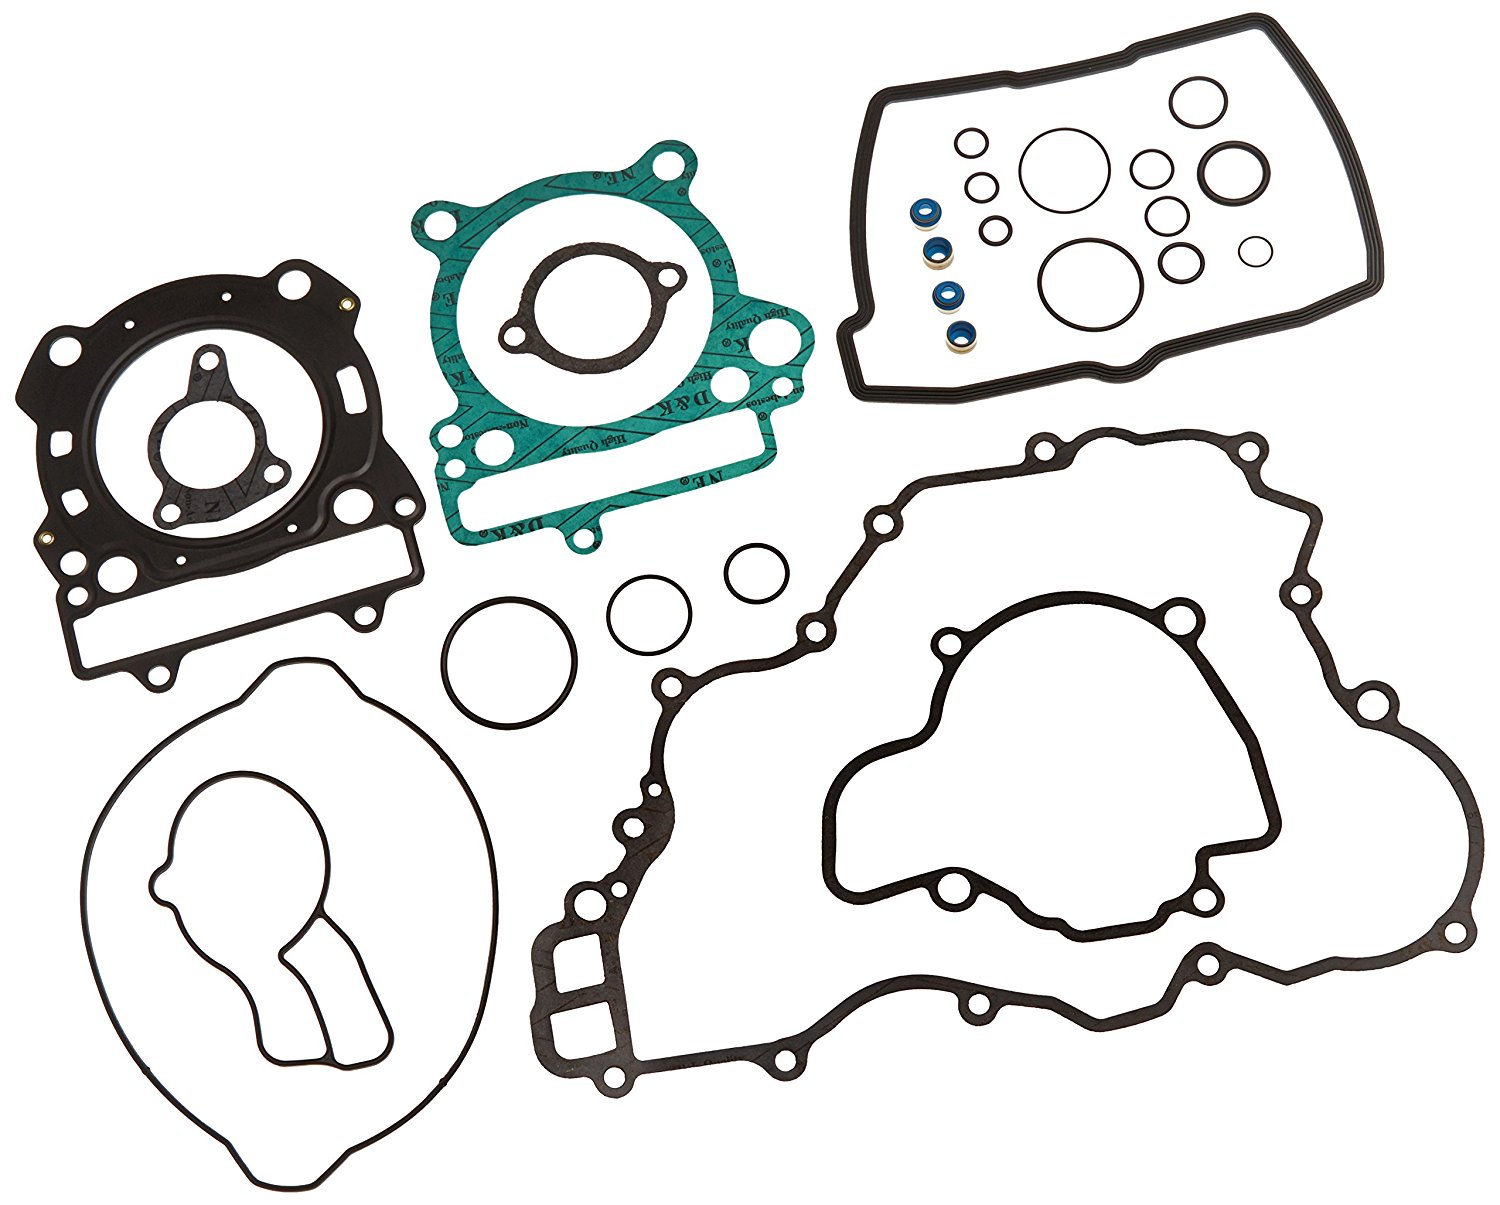 New Vertex Complete Gasket Set W/O Seals for KTM 250 EXC-F